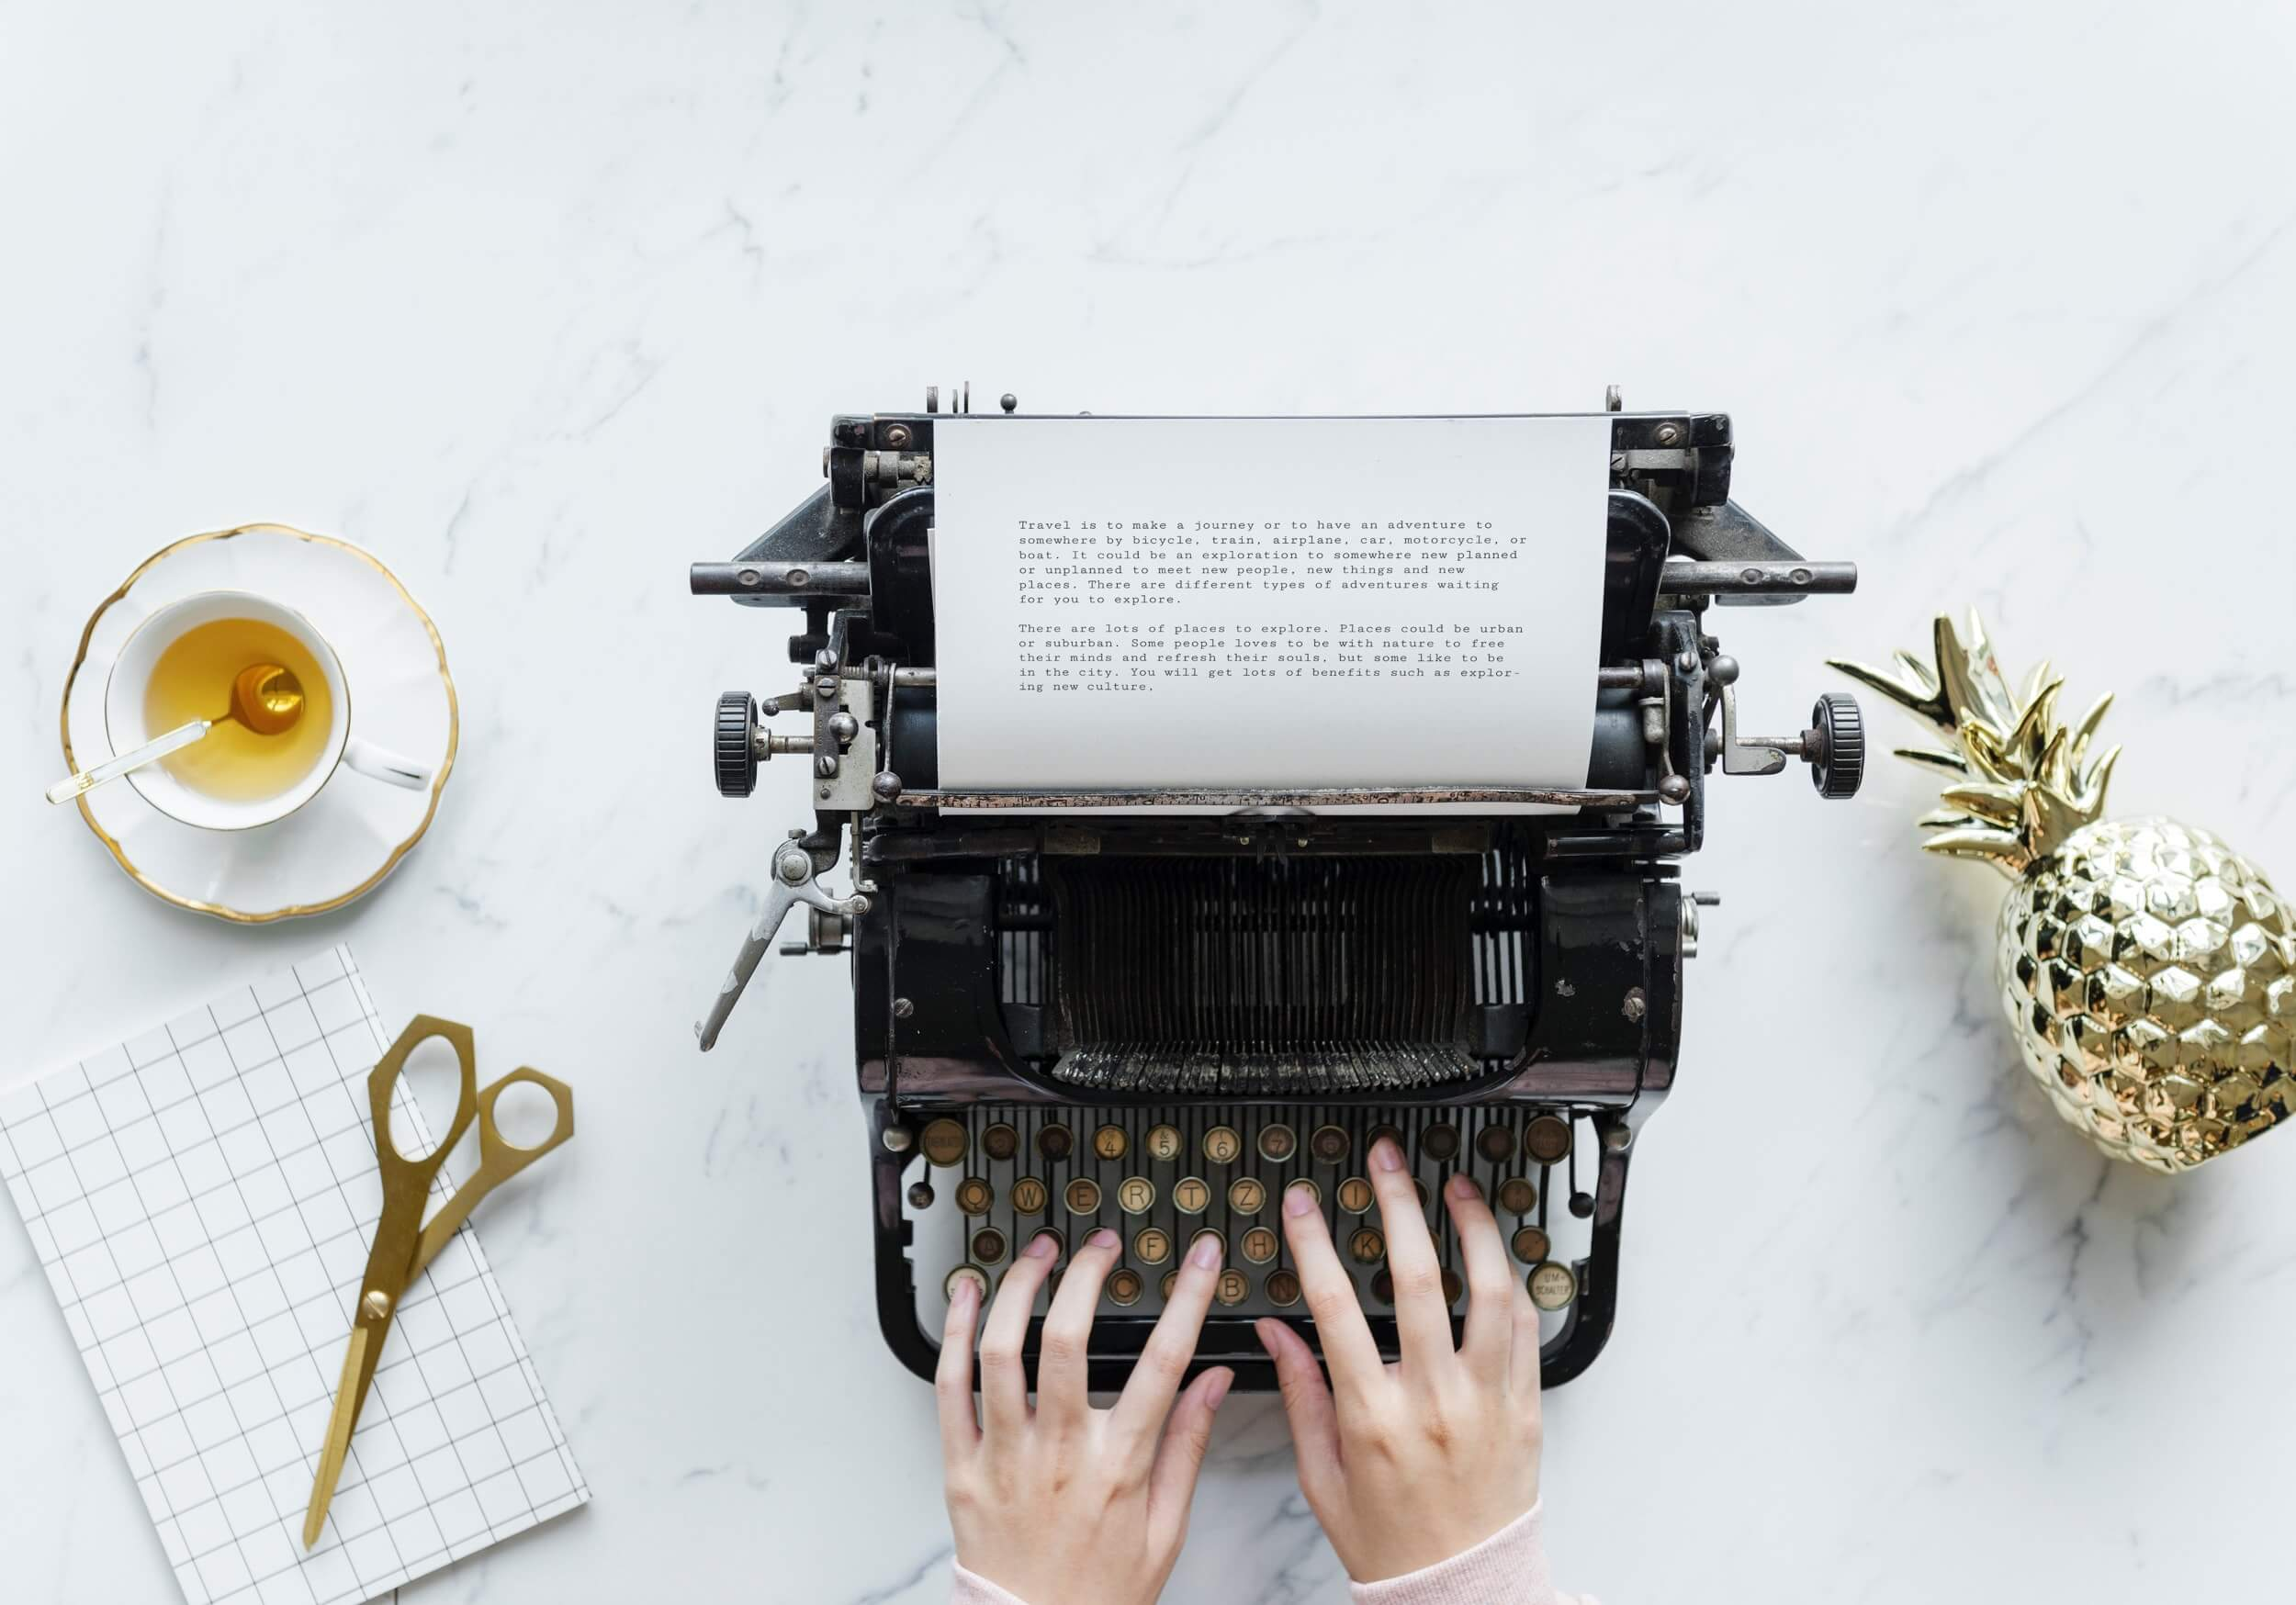 Here's why long-form content works